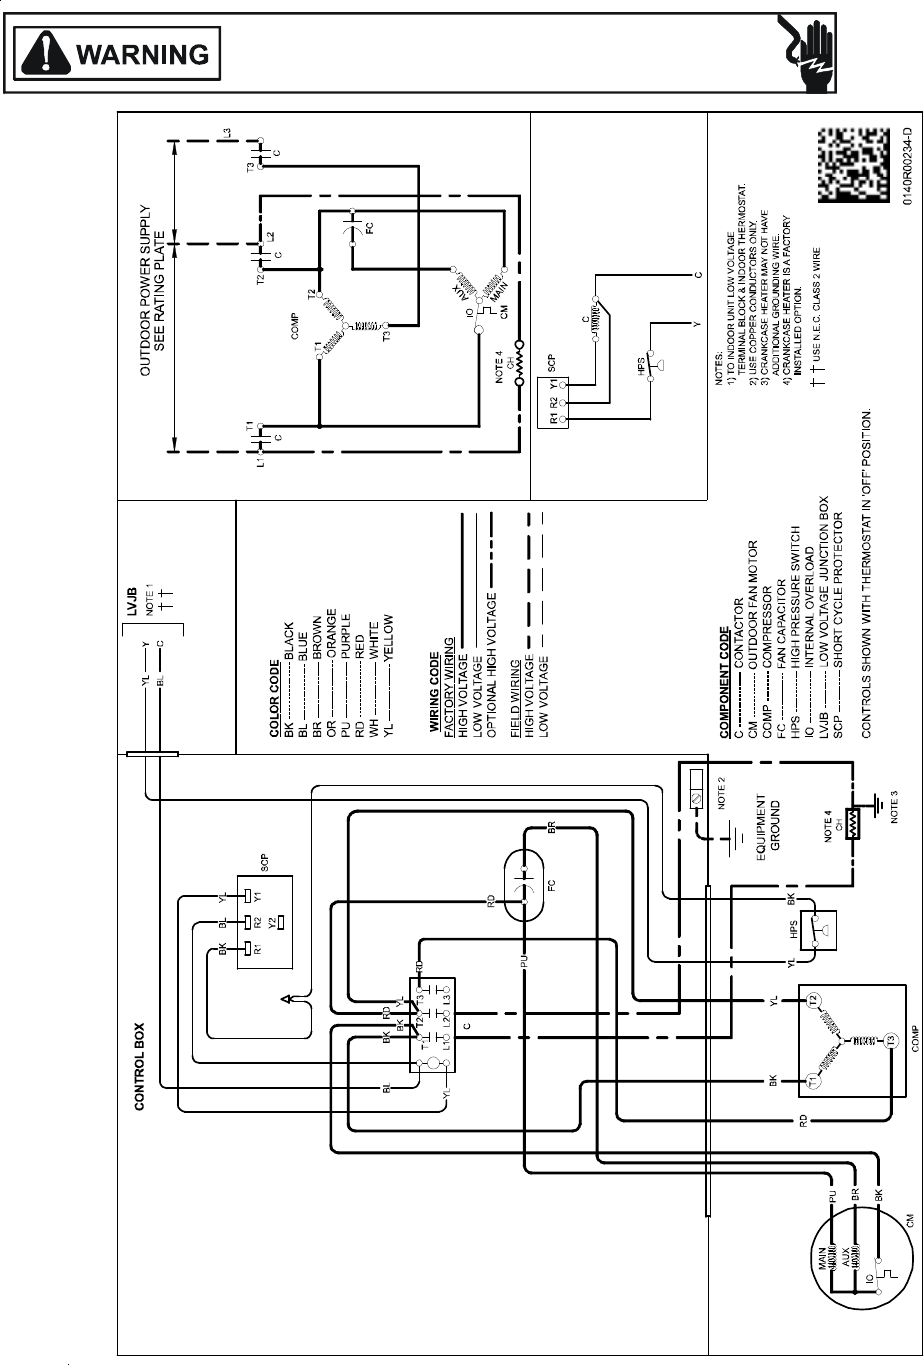 01ae4219 1c37 407a b2d5 49c2253cfc19 bg15 condensing unit wiring diagram damper wiring diagram \u2022 free wiring goodman hvac wiring diagram at cos-gaming.co